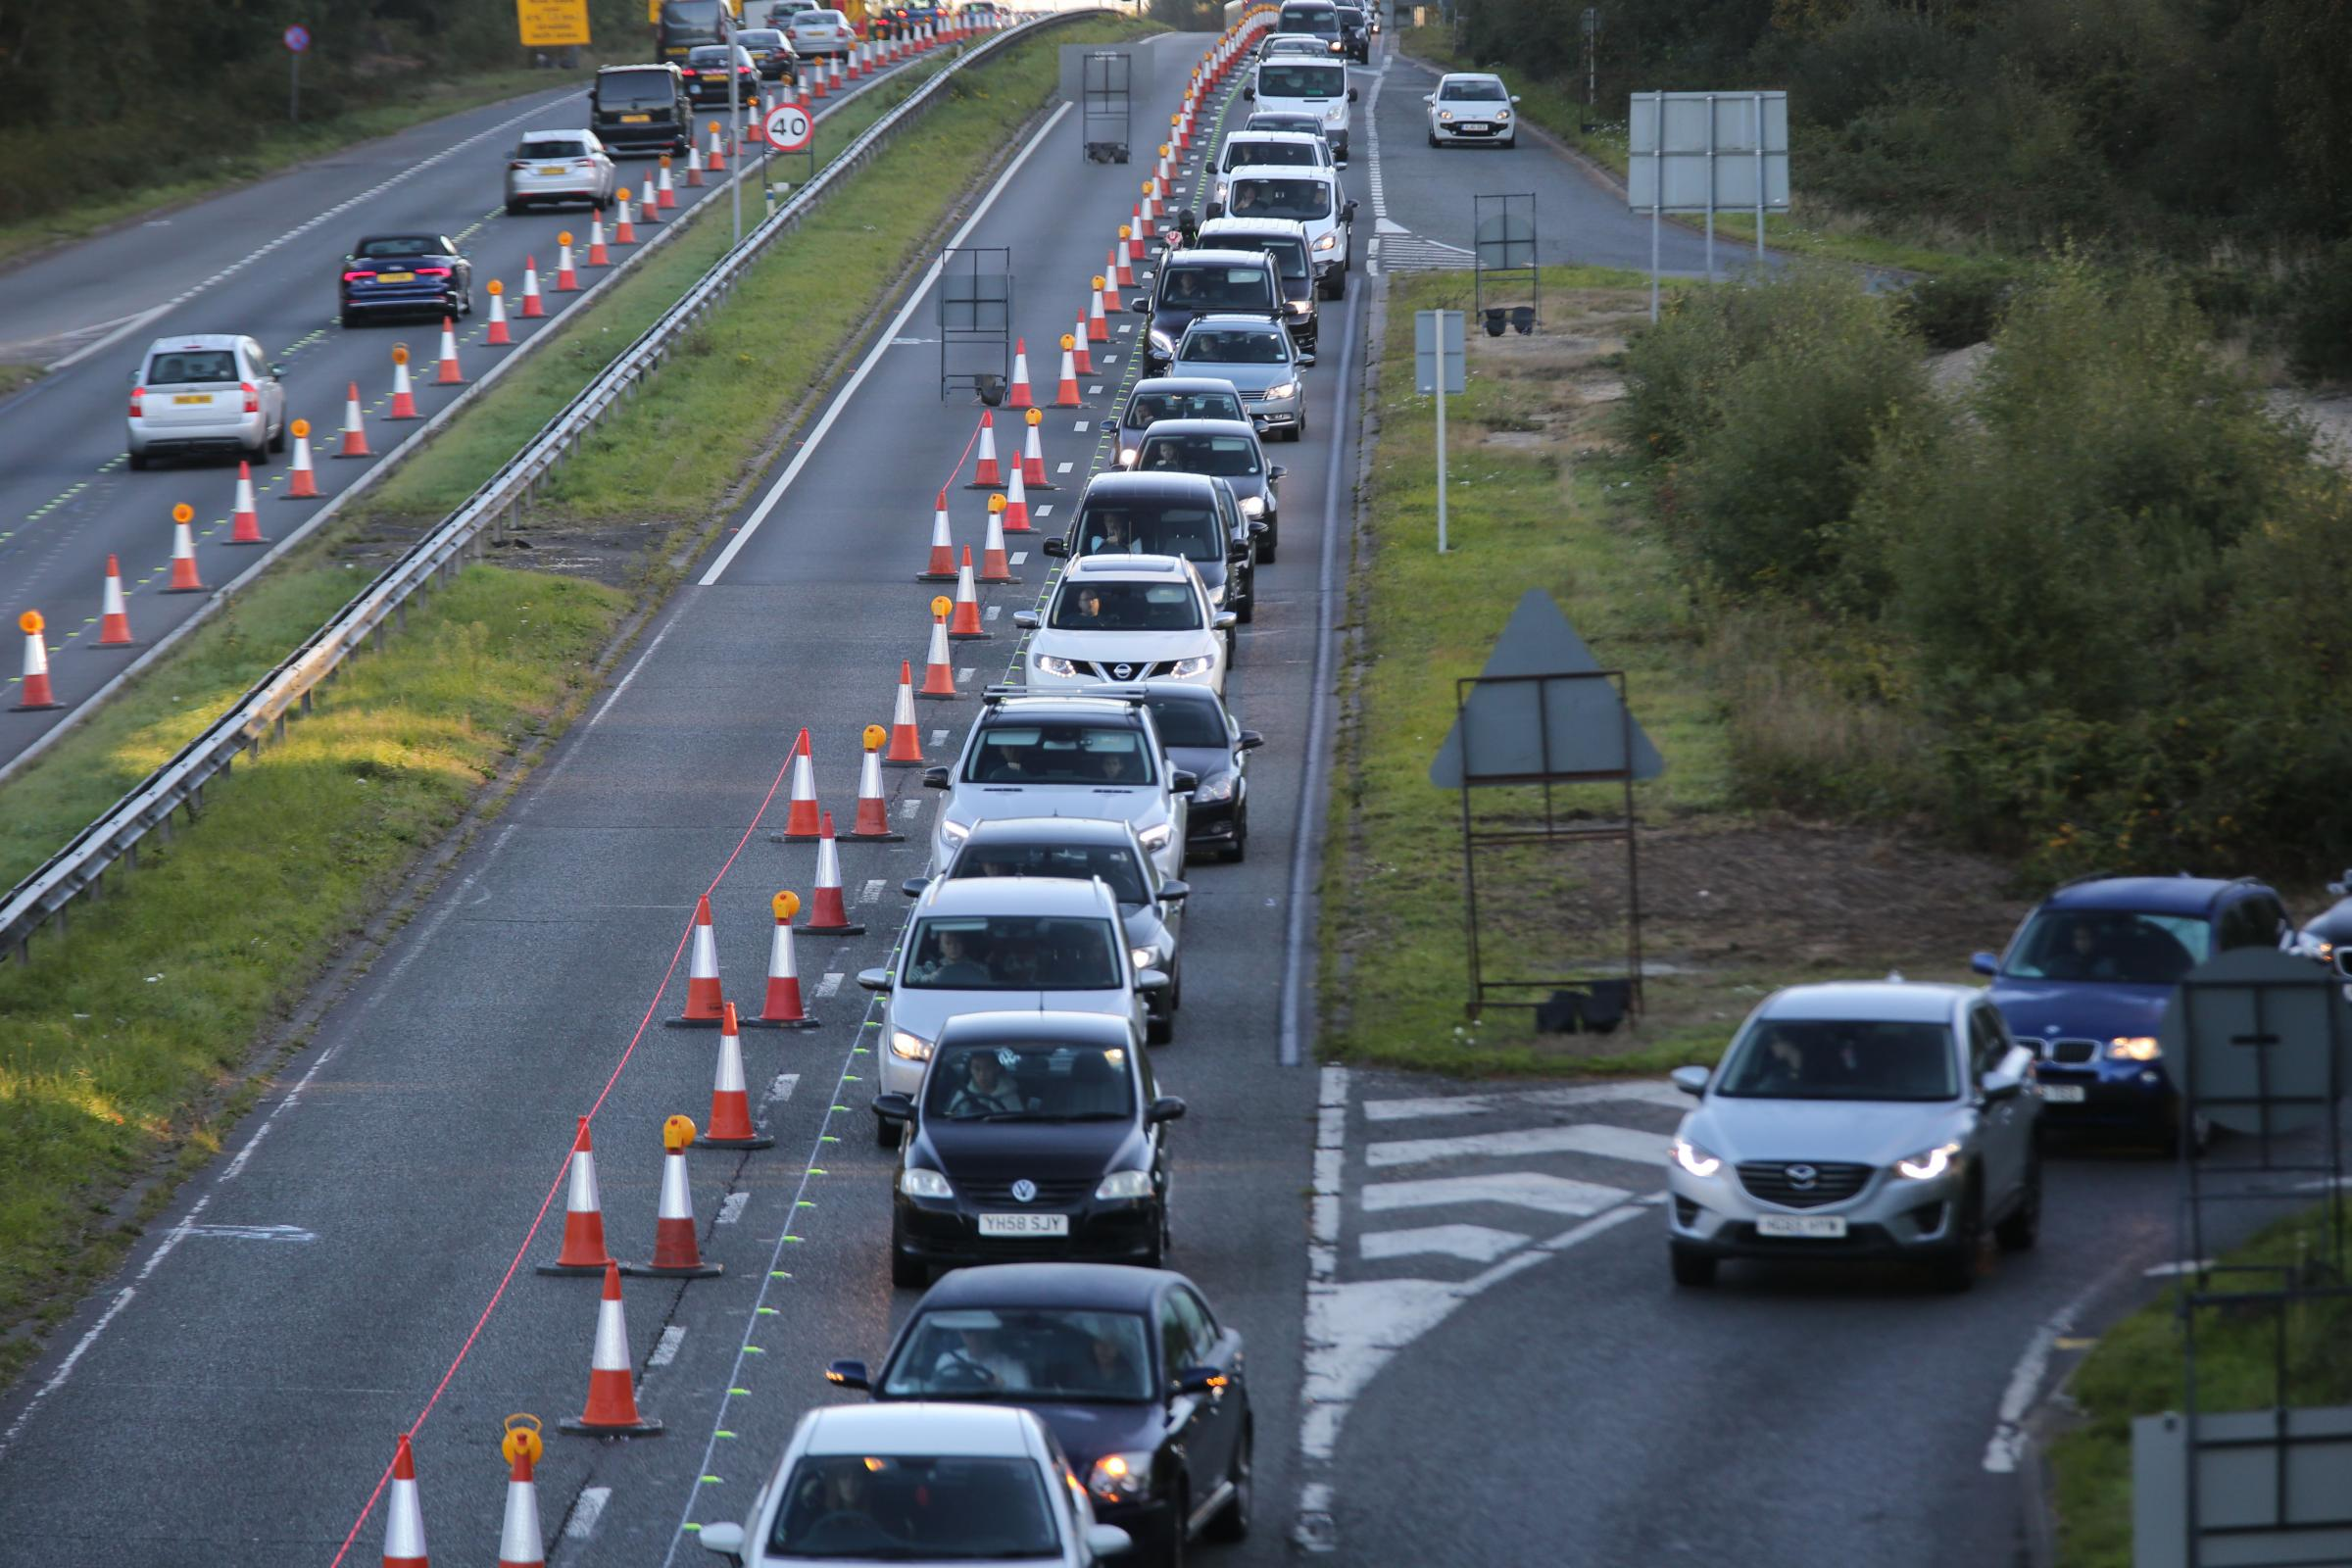 The A338 roadworks